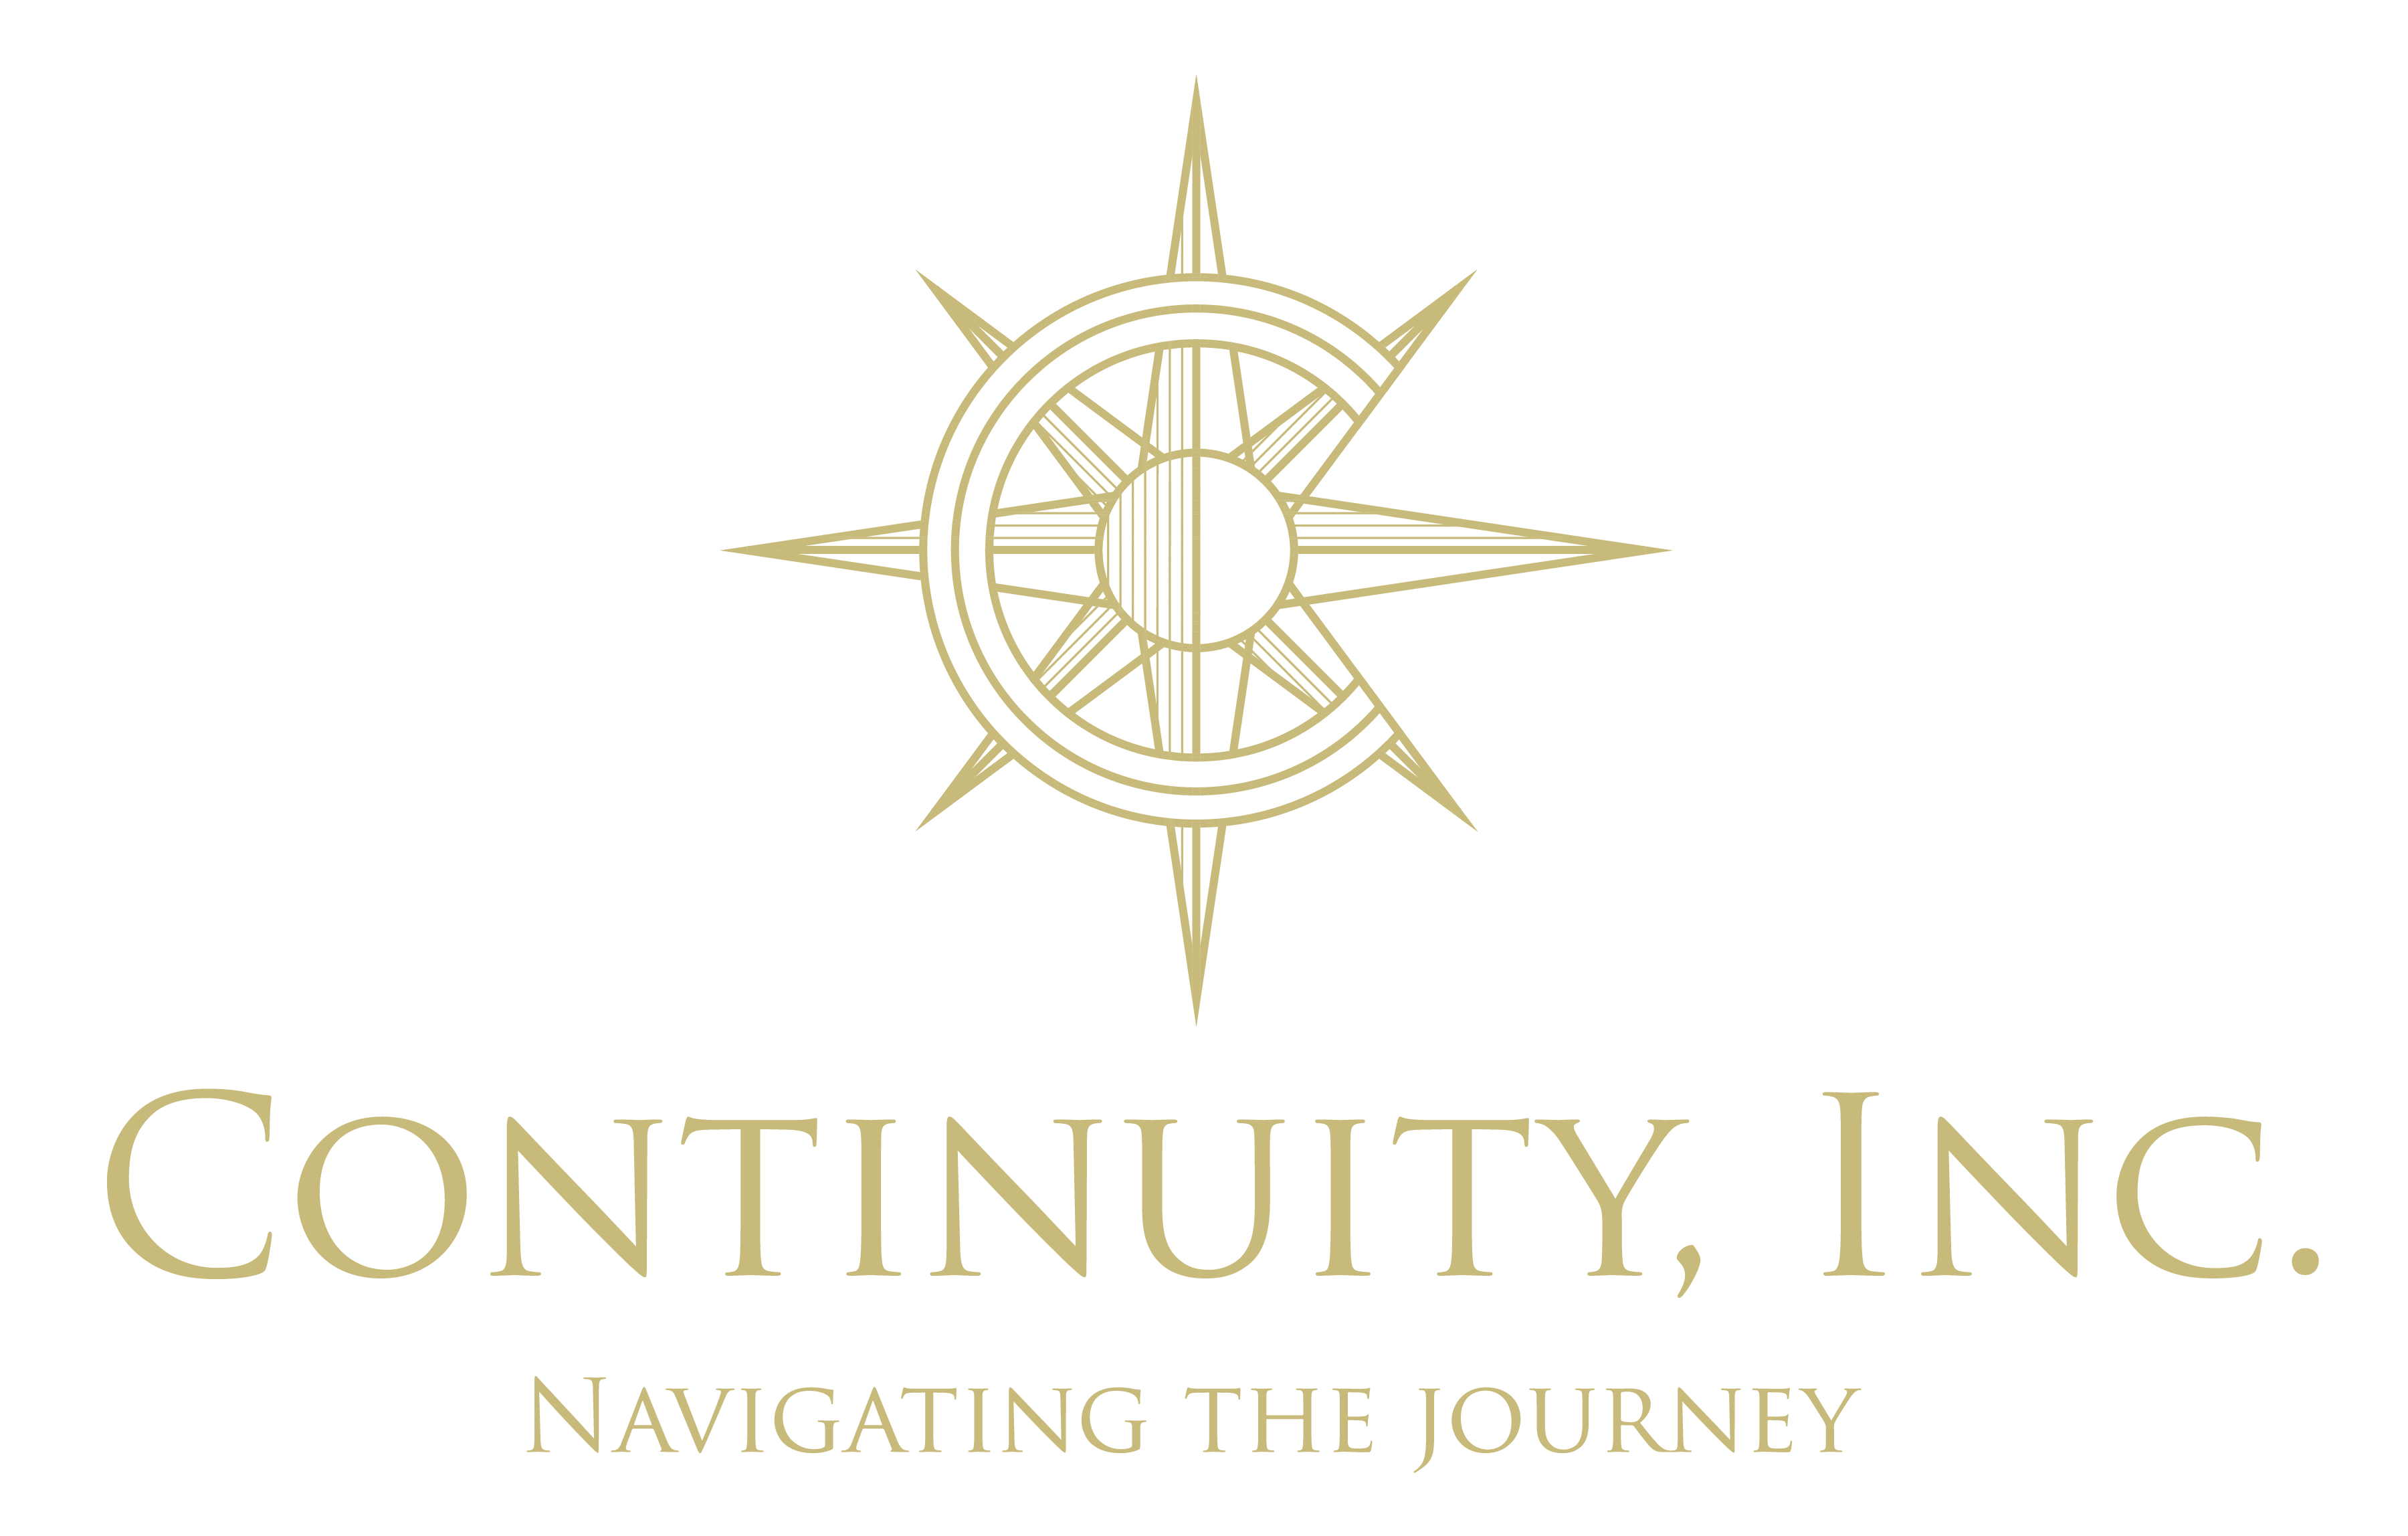 Compass Continuity - New startup needs powerful logo!